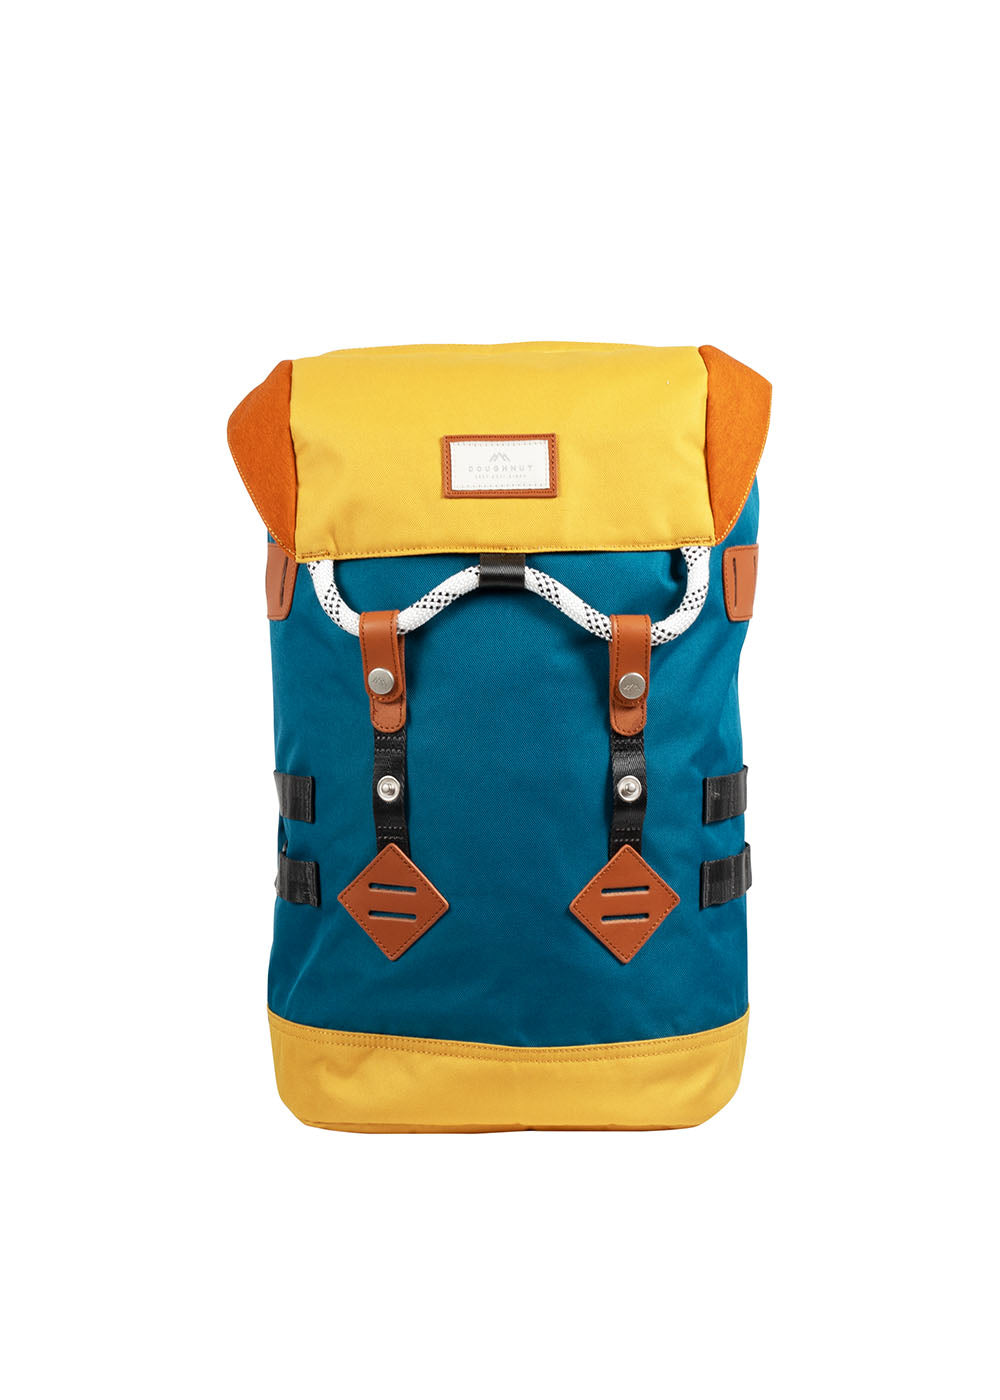 COLORADO SMALL MID TONE SERIES Teal x Mustard